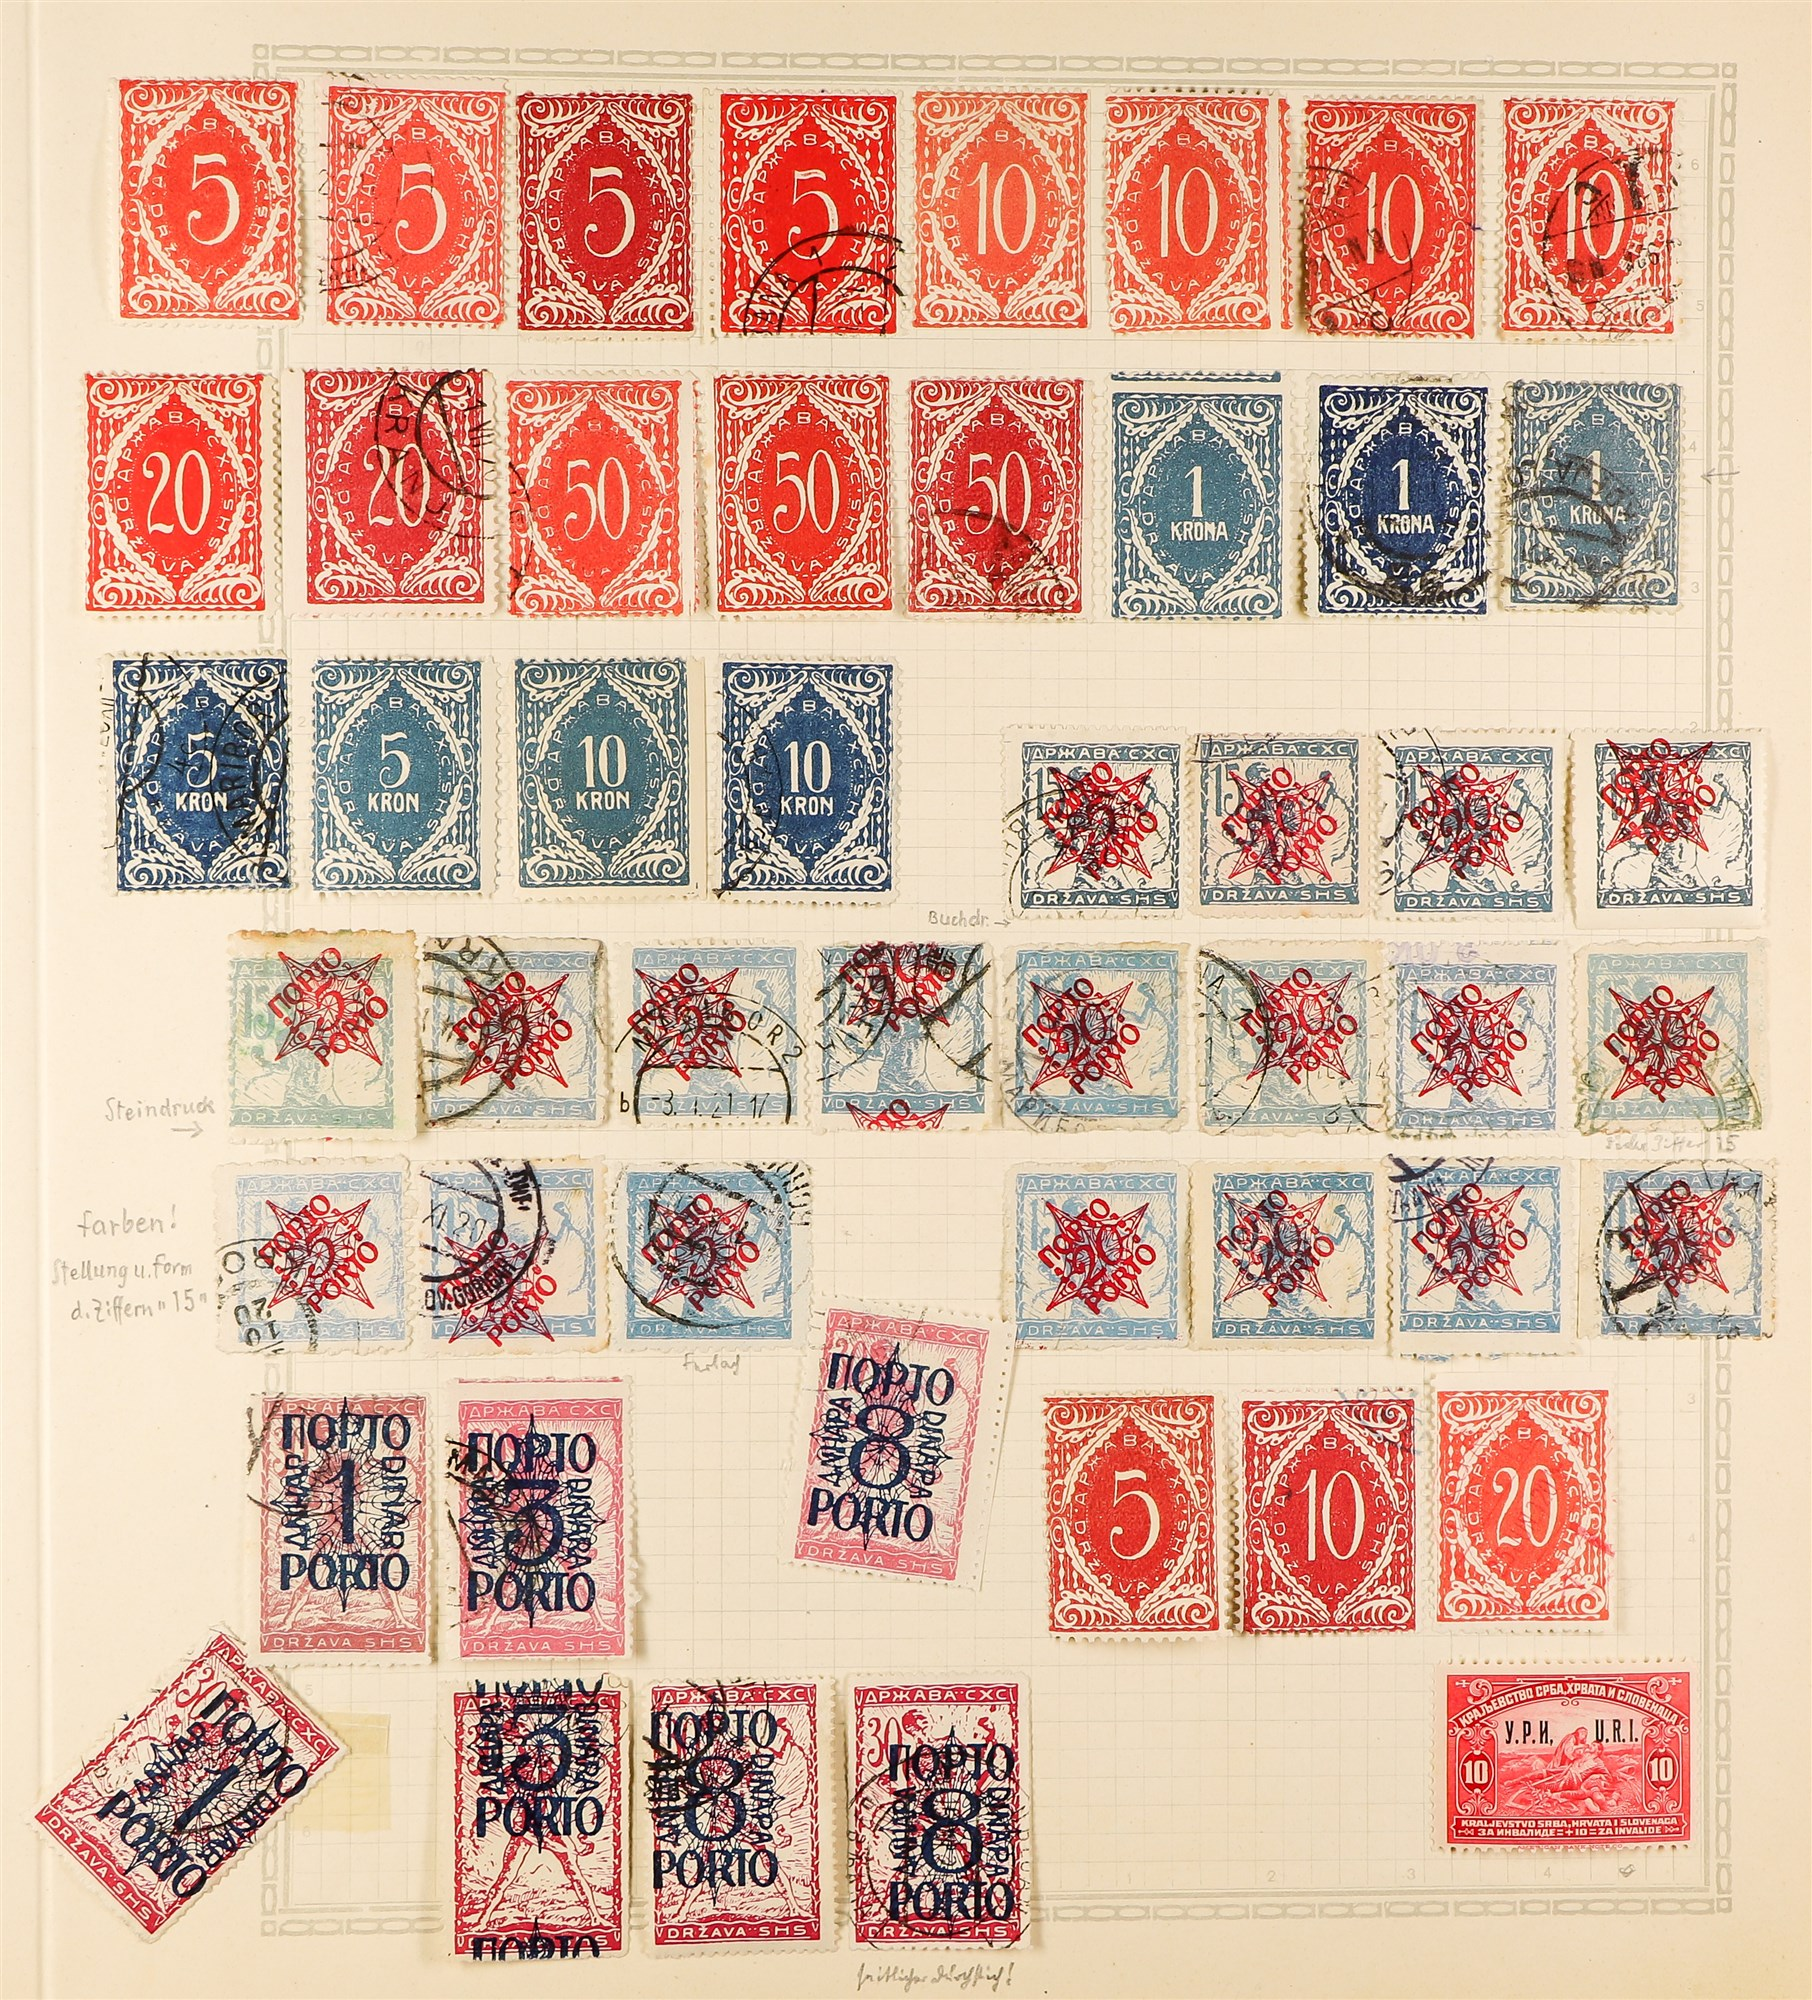 YUGOSLAVIA 1919-80 COLLECTION of mint and used issues in an album, incl. extensive Chainbreakers, - Image 11 of 17